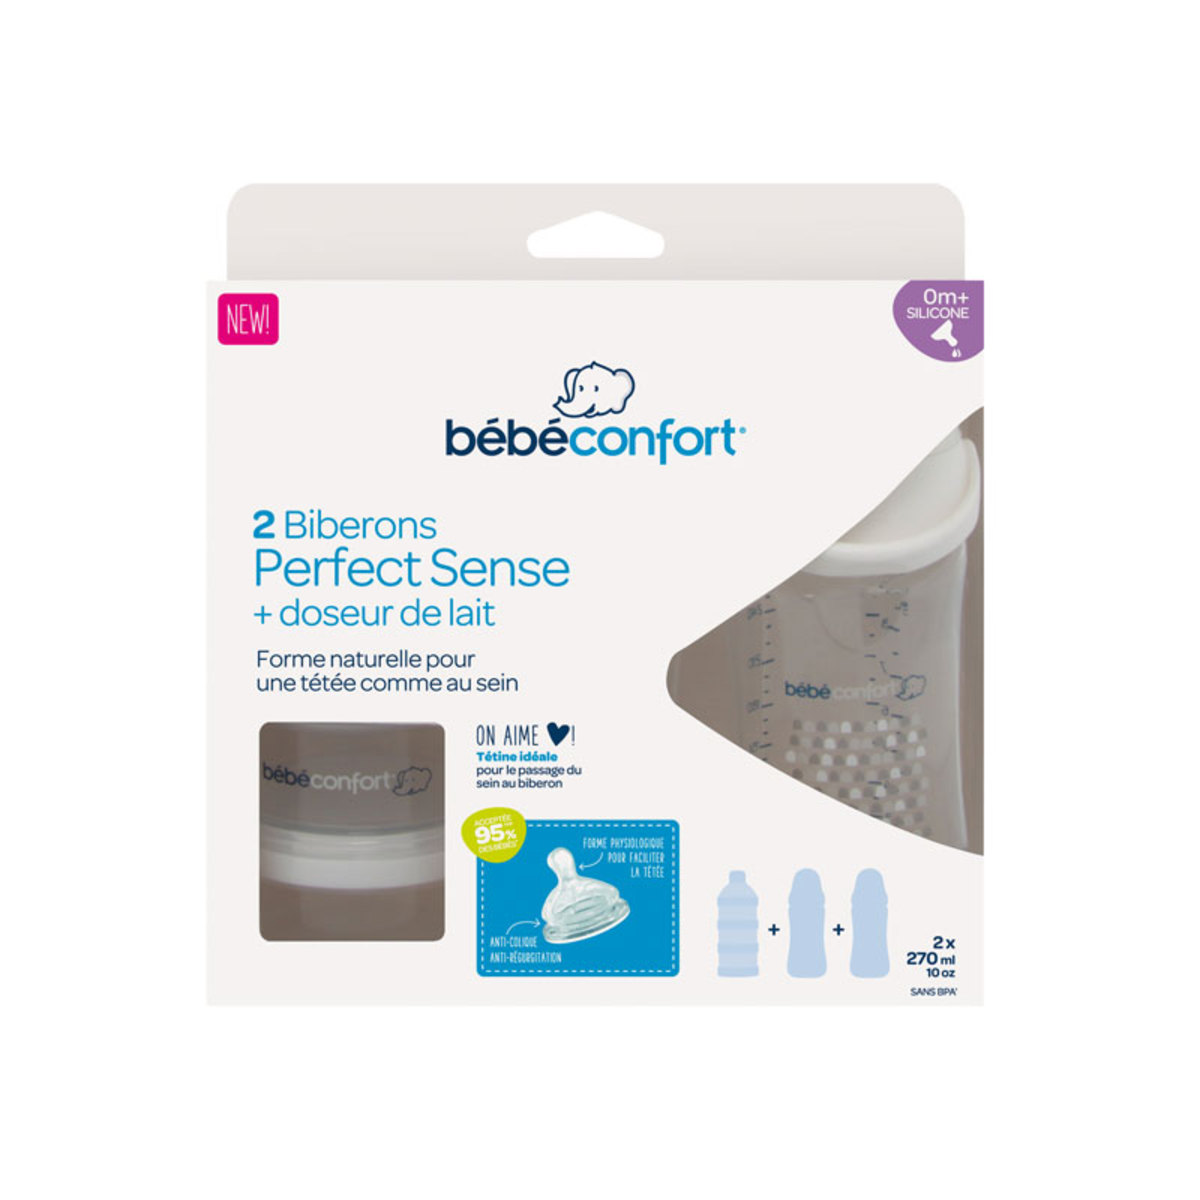 Biberon Lot de 2 Biberons Perfect Sense 270 ml Little Valleys Blanc + Doseur de lait Lot de 2 Biberons Perfect Sense 270 ml Little Valleys Blanc + Doseur de lait